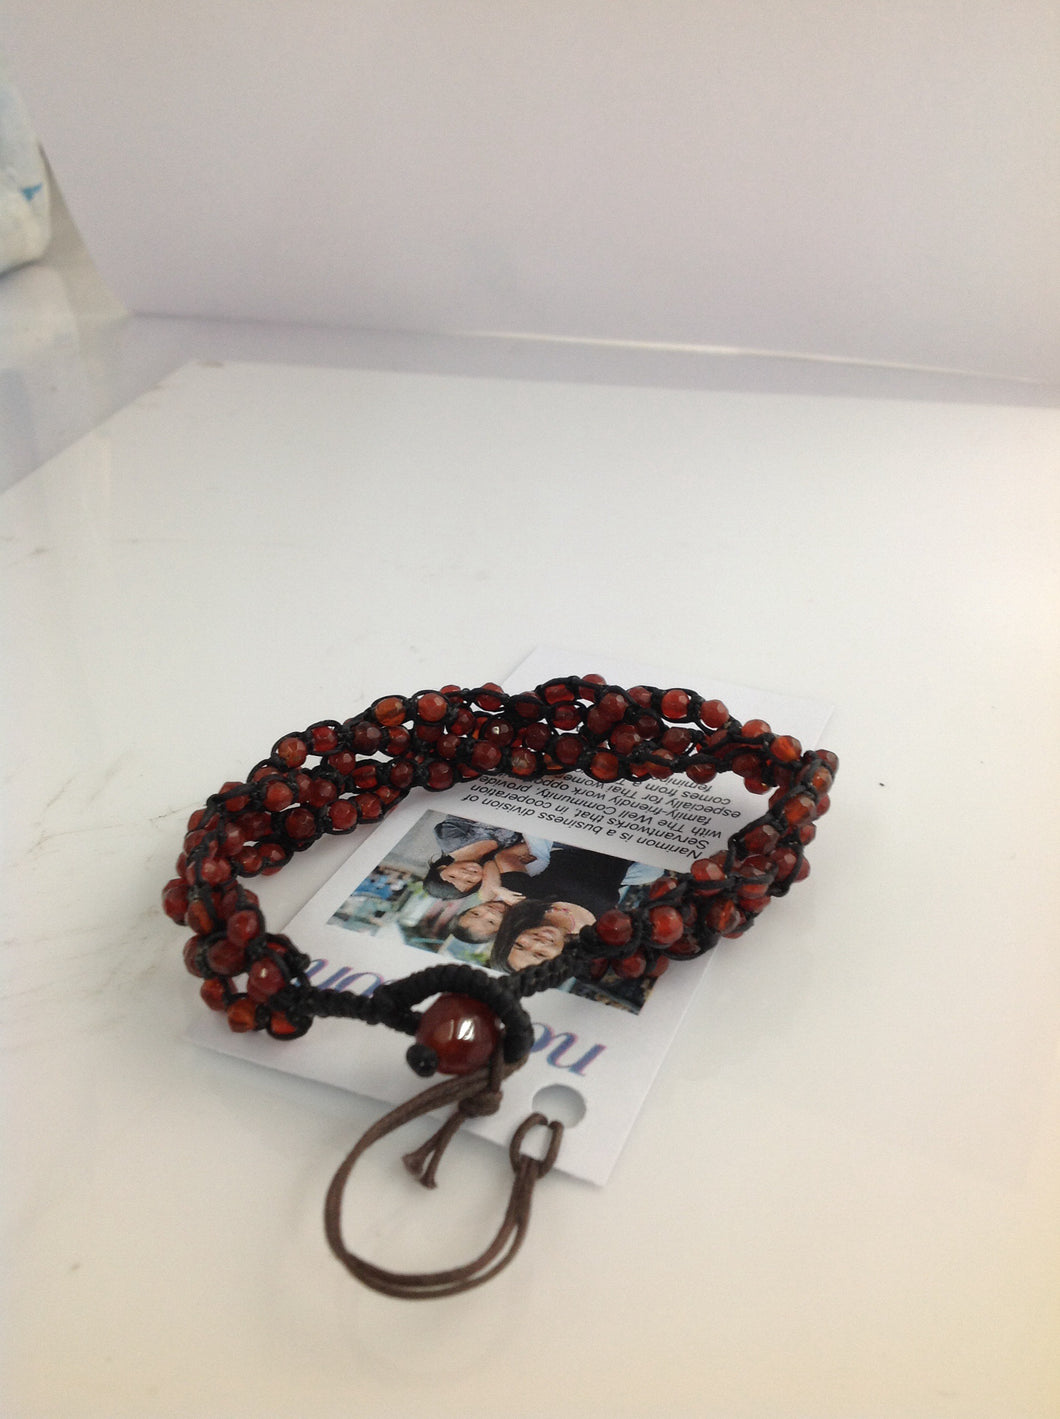 Carnelian Beads and Black Crocheted Rope 9